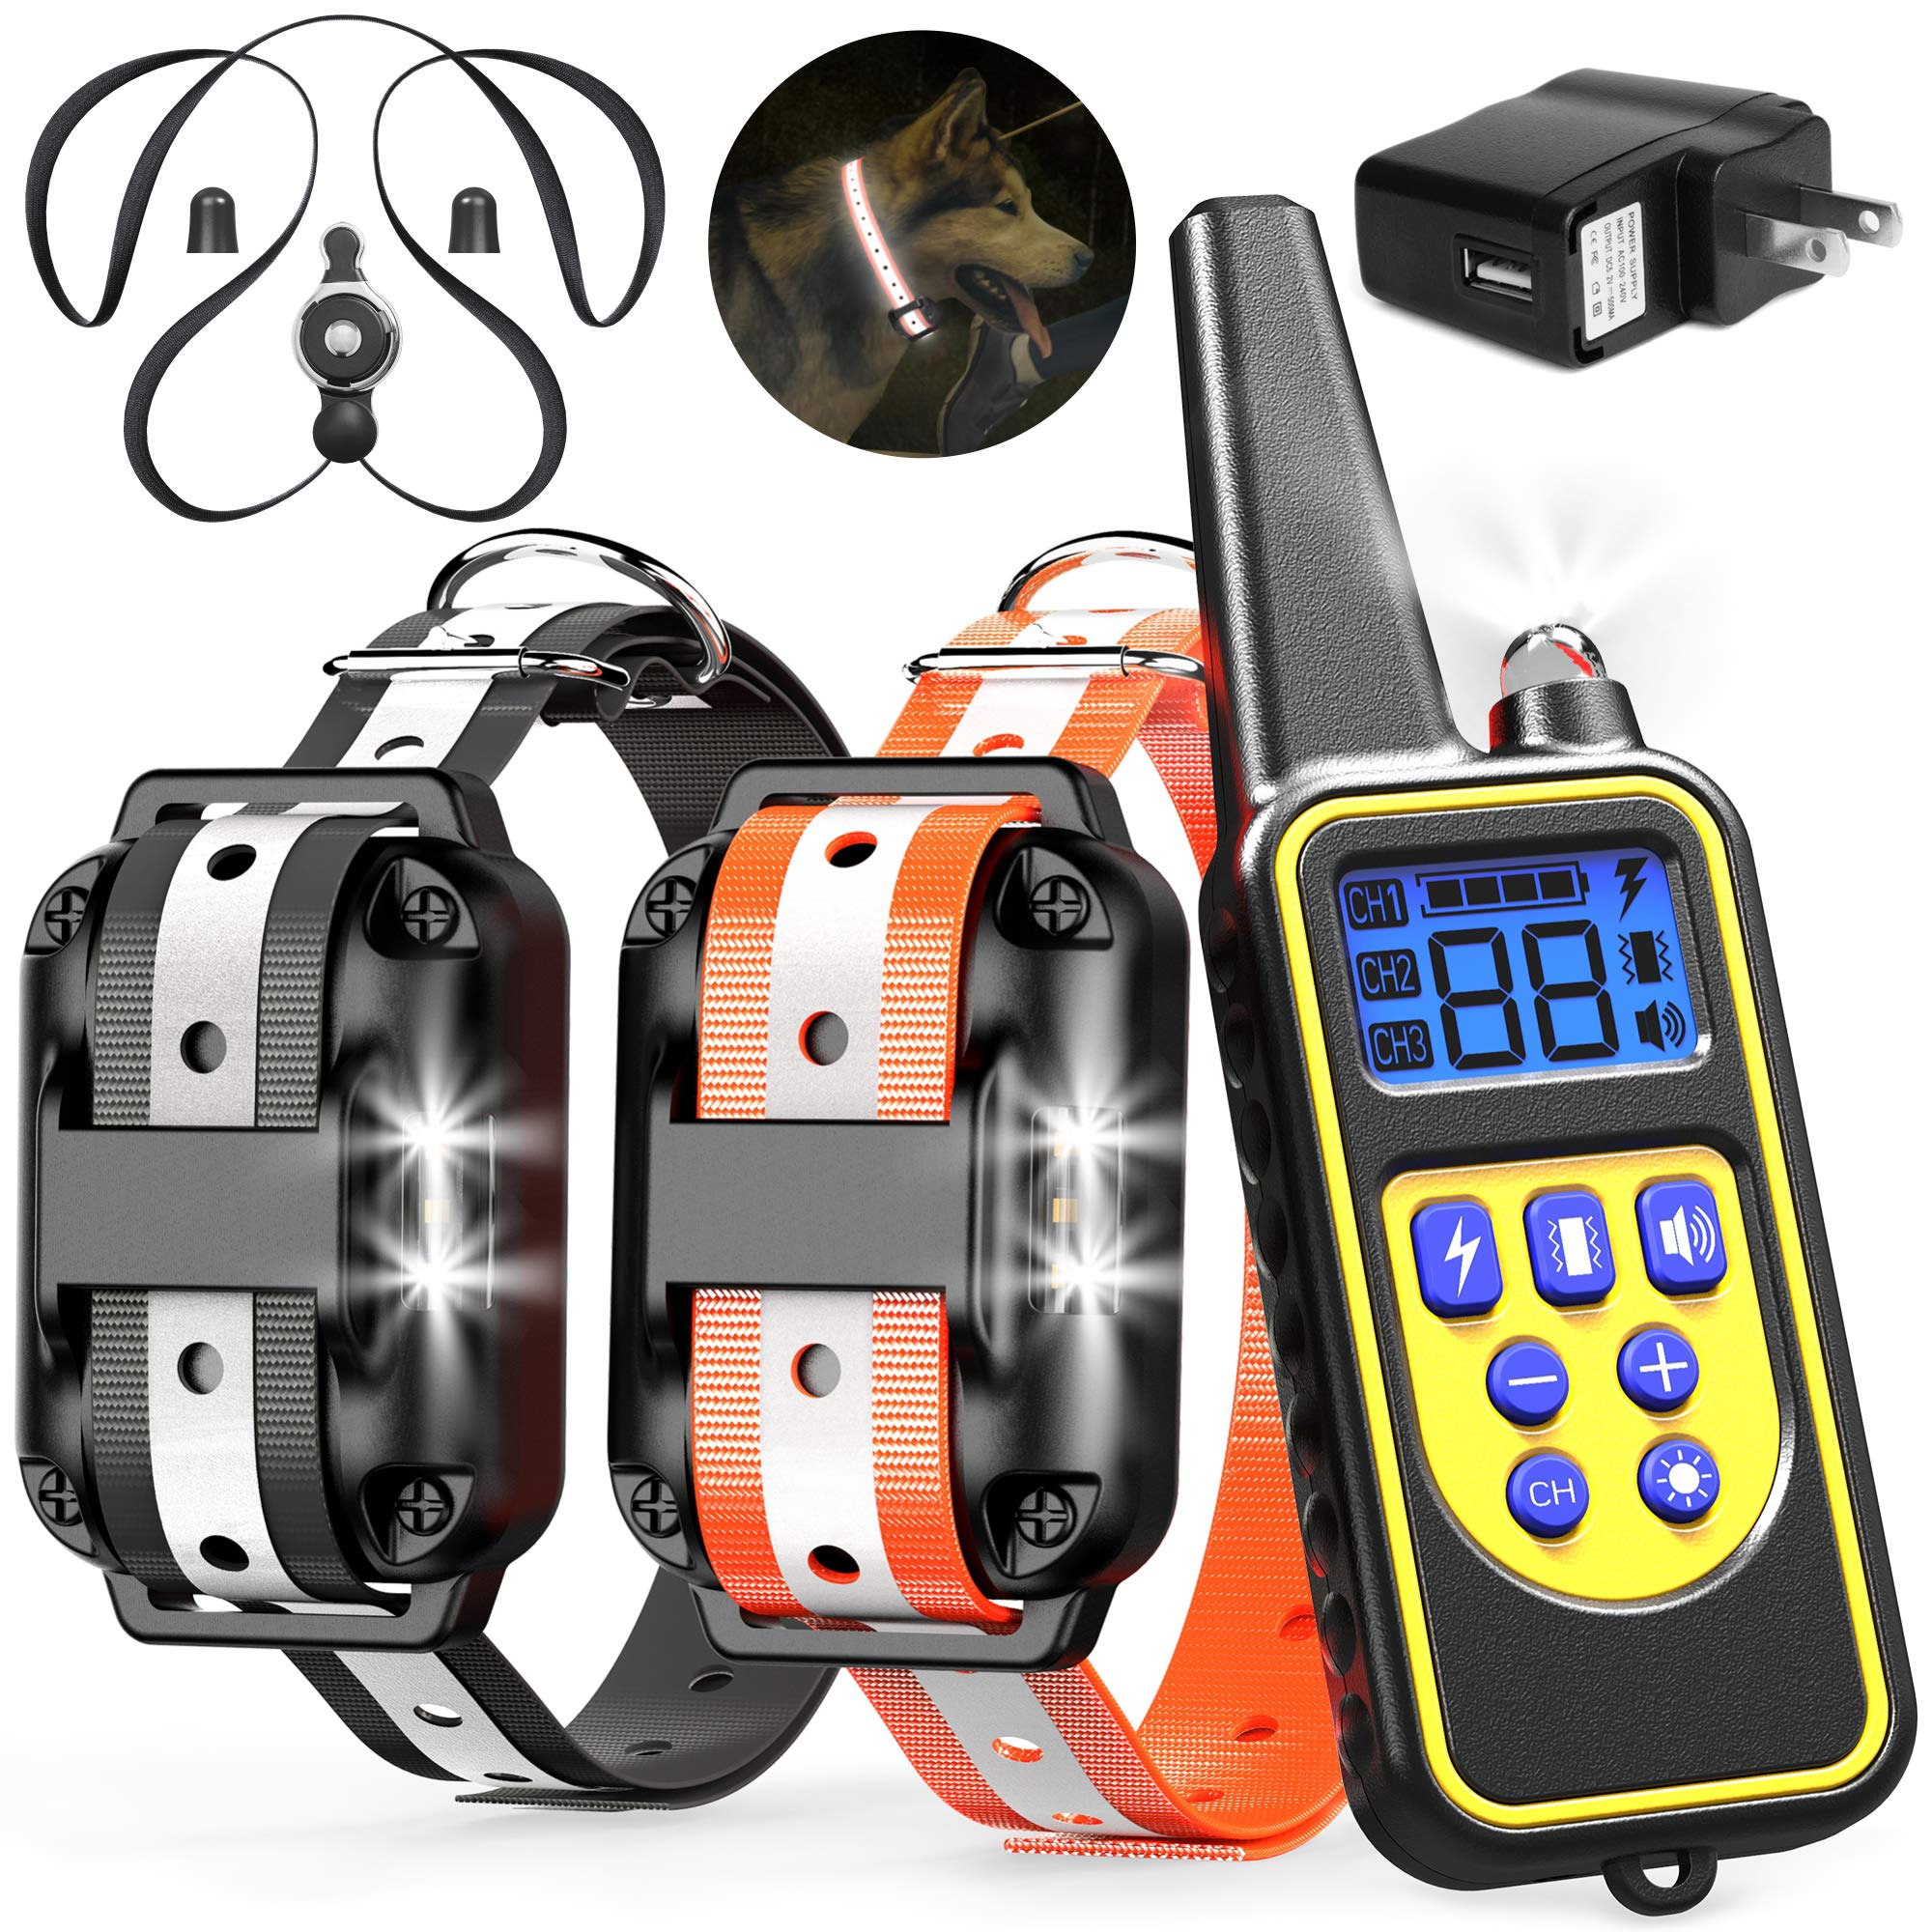 Veckle Dog Training Collar, 2600ft Rechargeable Shock Collar for 2 Dogs Waterproof Dog Shock Collar with Remote, LED Light, Beep, Charger, Vibration Dog Electronic Collar for Large and Medium Dogs by Veckle